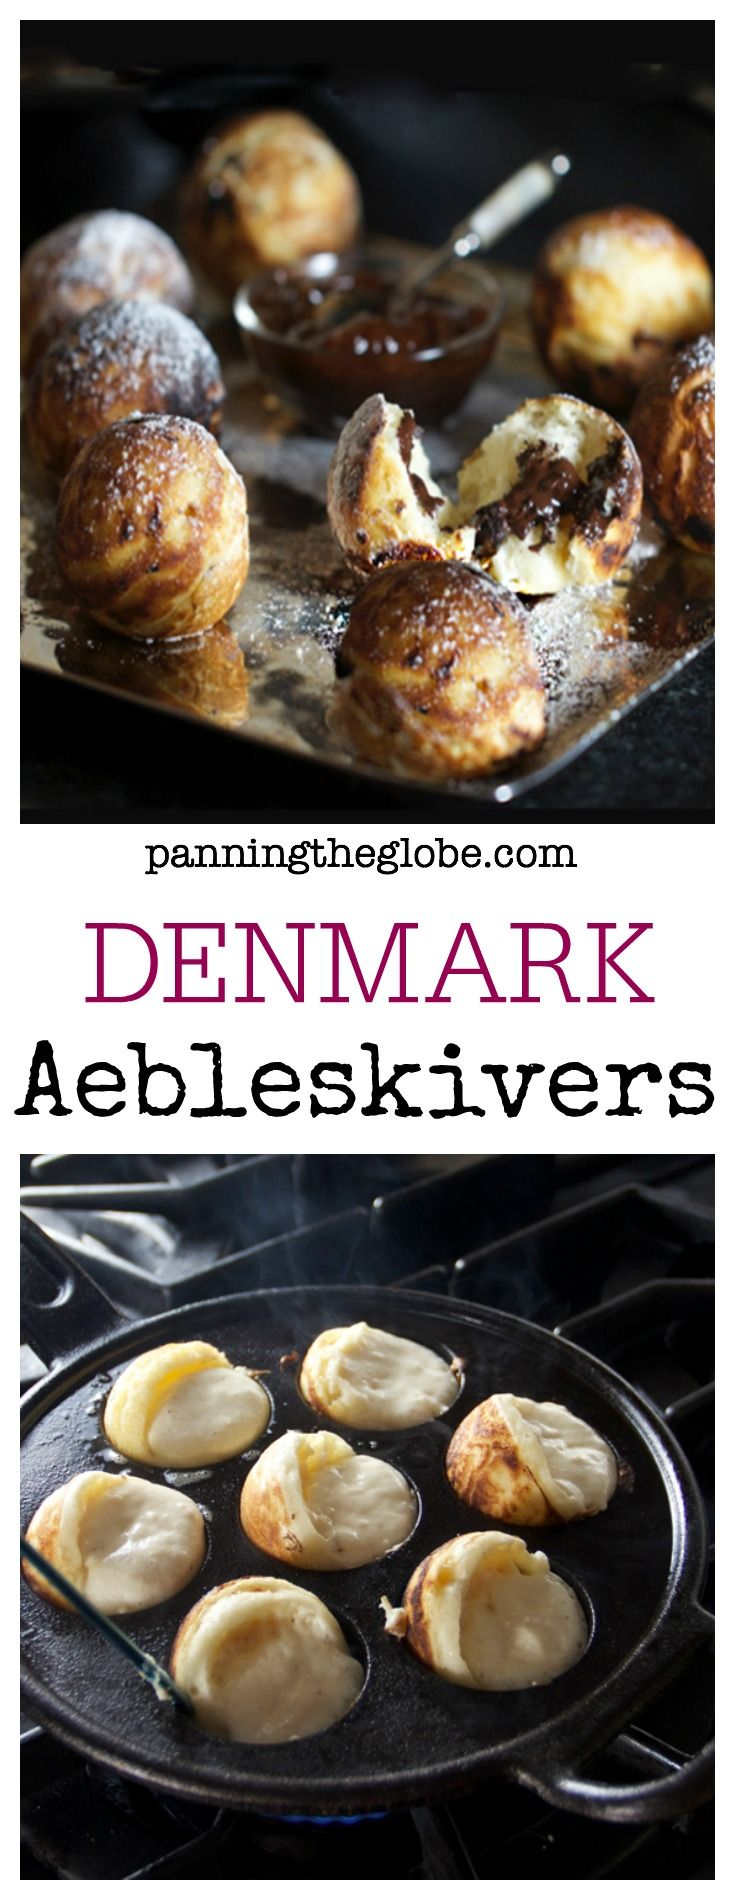 4381 best danish food images on pinterest danish food rezepte and danish aebleskivers norwegian recipesdutch recipesdanish recipesdanish christmasdanish fooddanish forumfinder